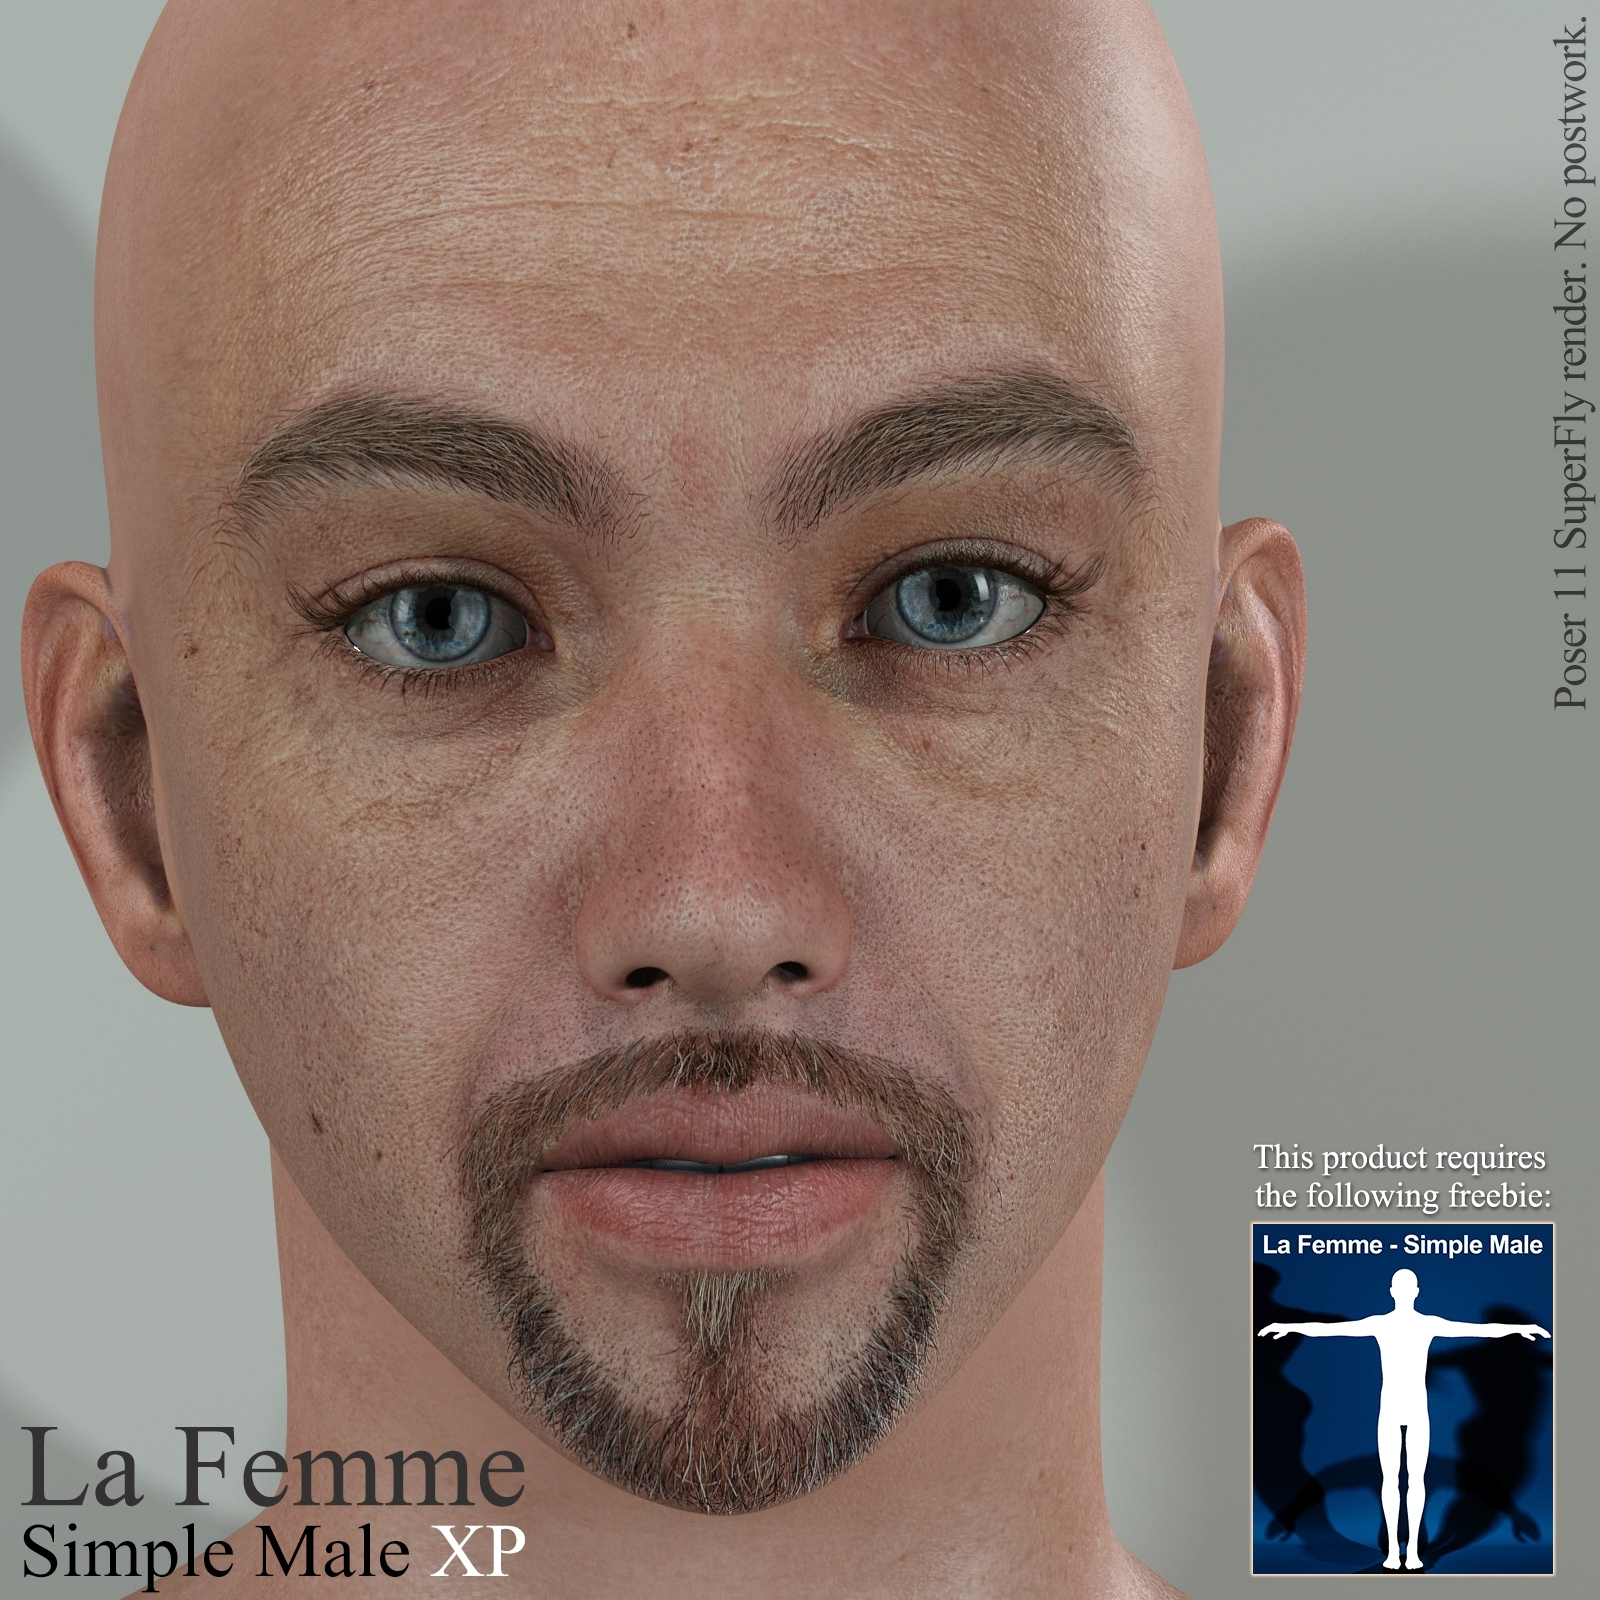 La Femme - Simple Male XP